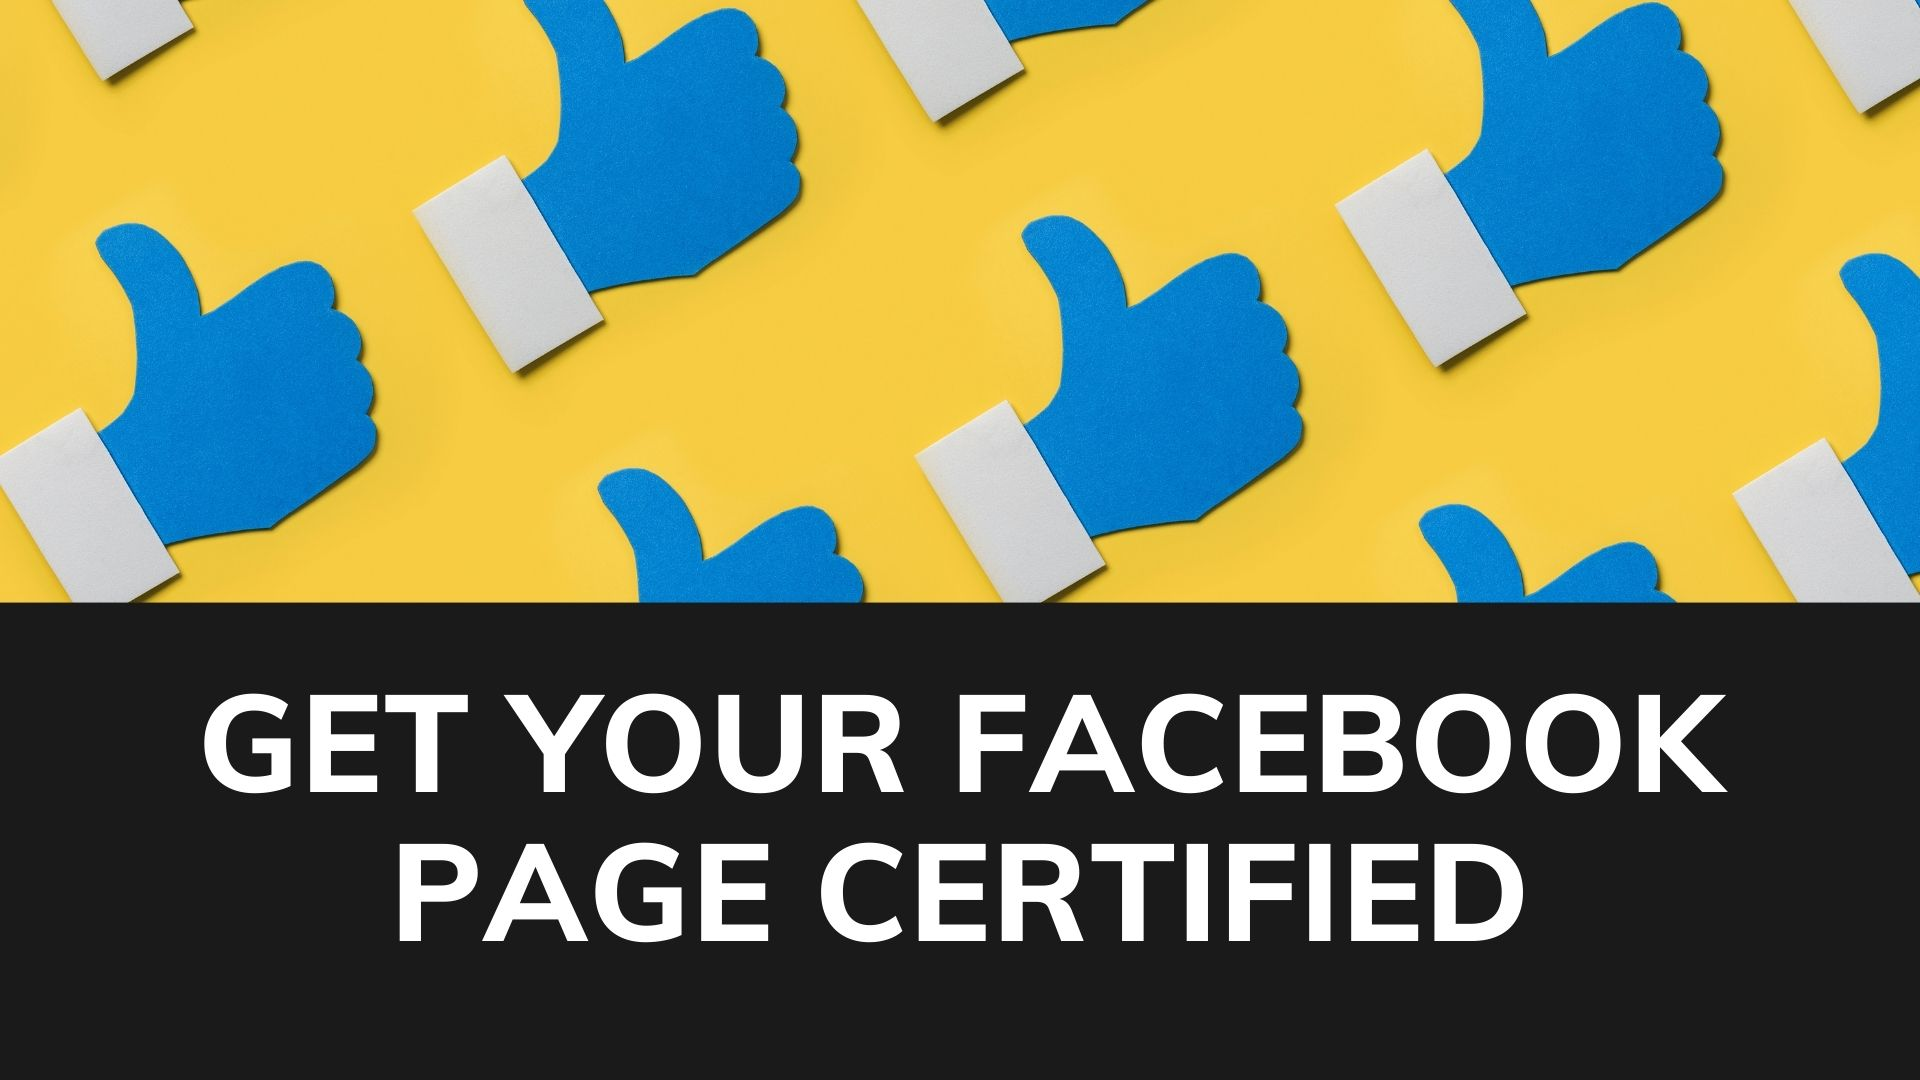 Get your facebook page certified